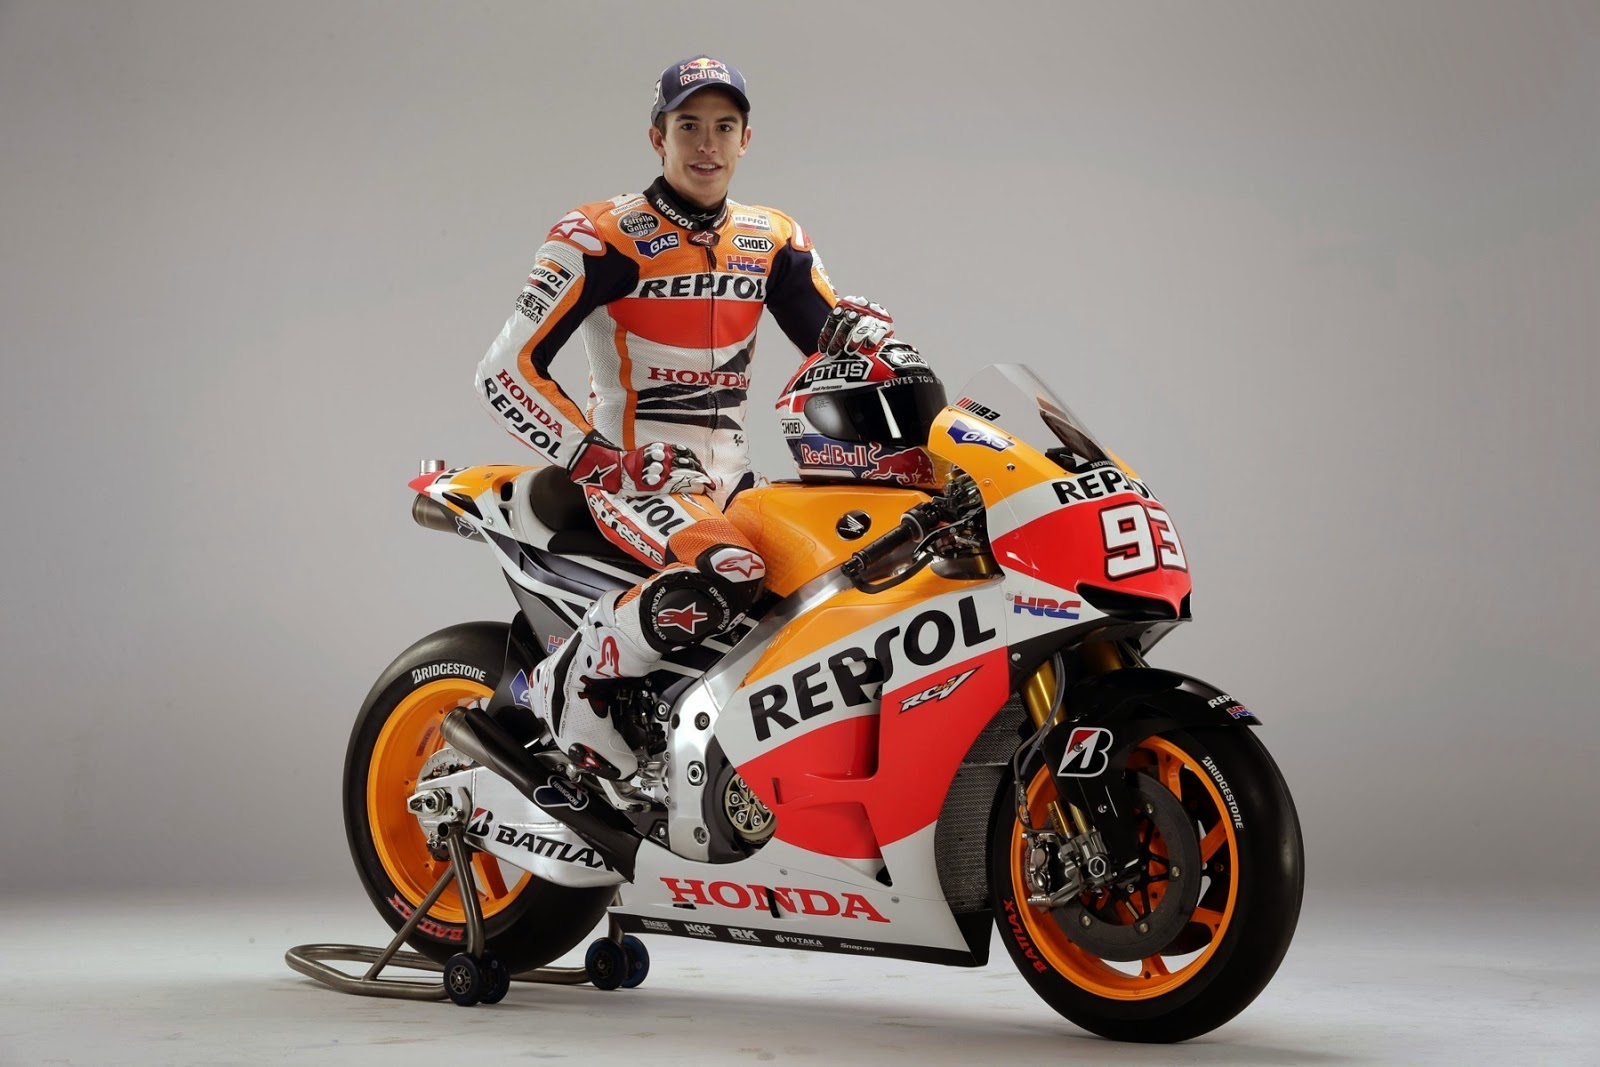 Marc Marquez HD Wallpaper 2014 T Mobile Daily News Collection